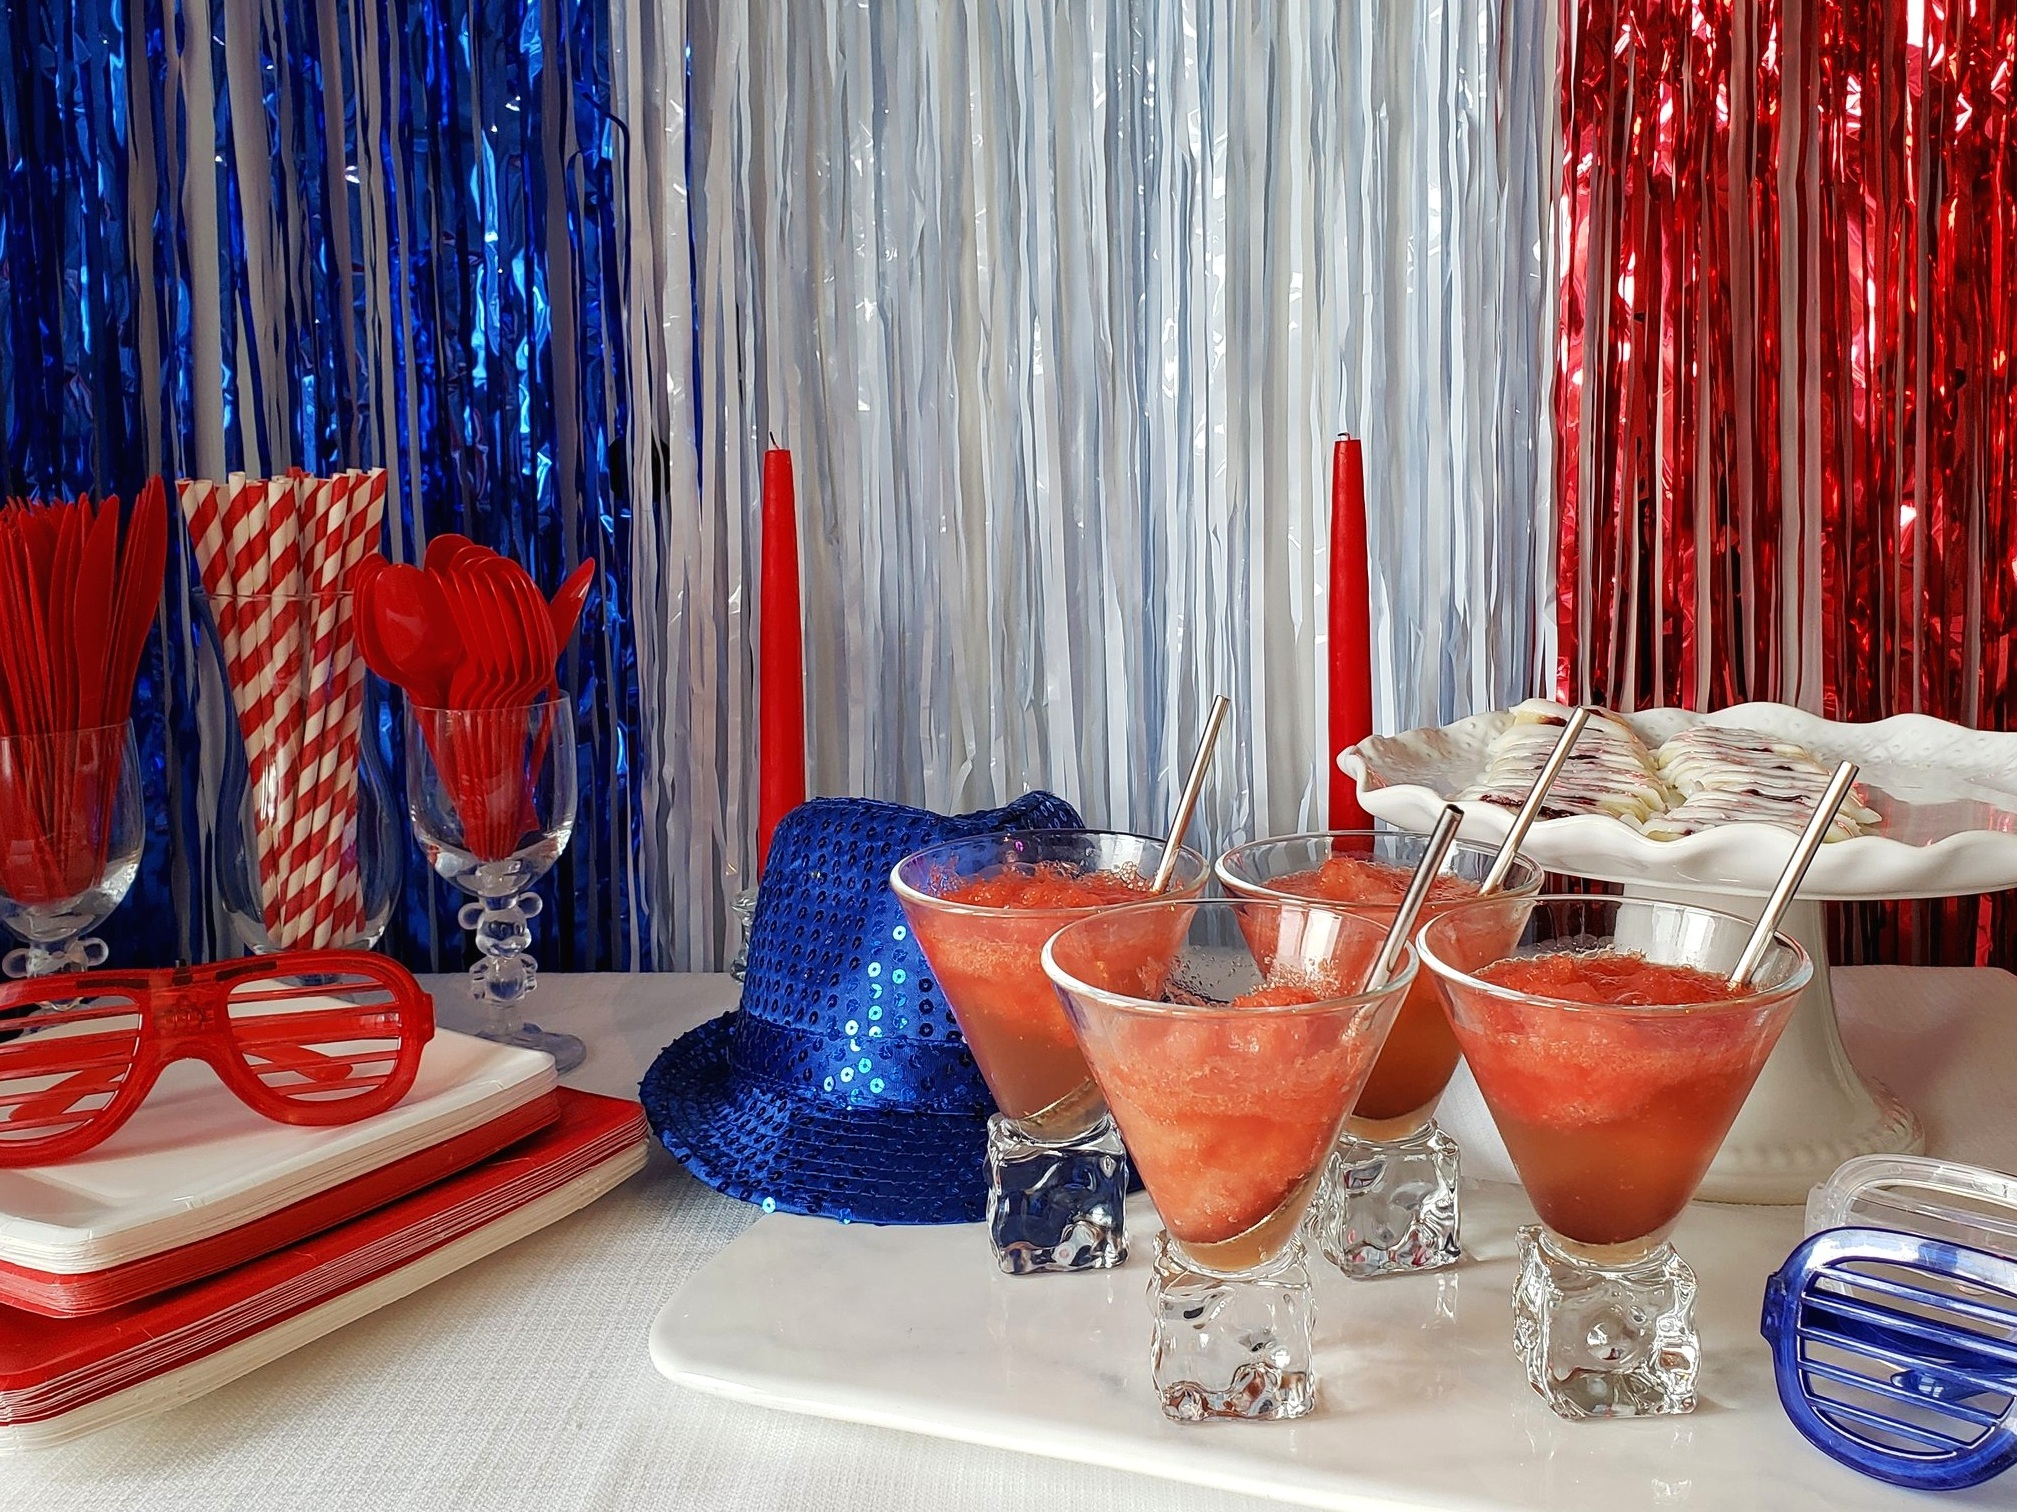 July 4th Party! - For our July 4th party, we chose to keep things simple. Red, white and blue fringe curtains for our backdrop, simple red and white plates and cutlery, easy watermelon slush and jam diagonals!